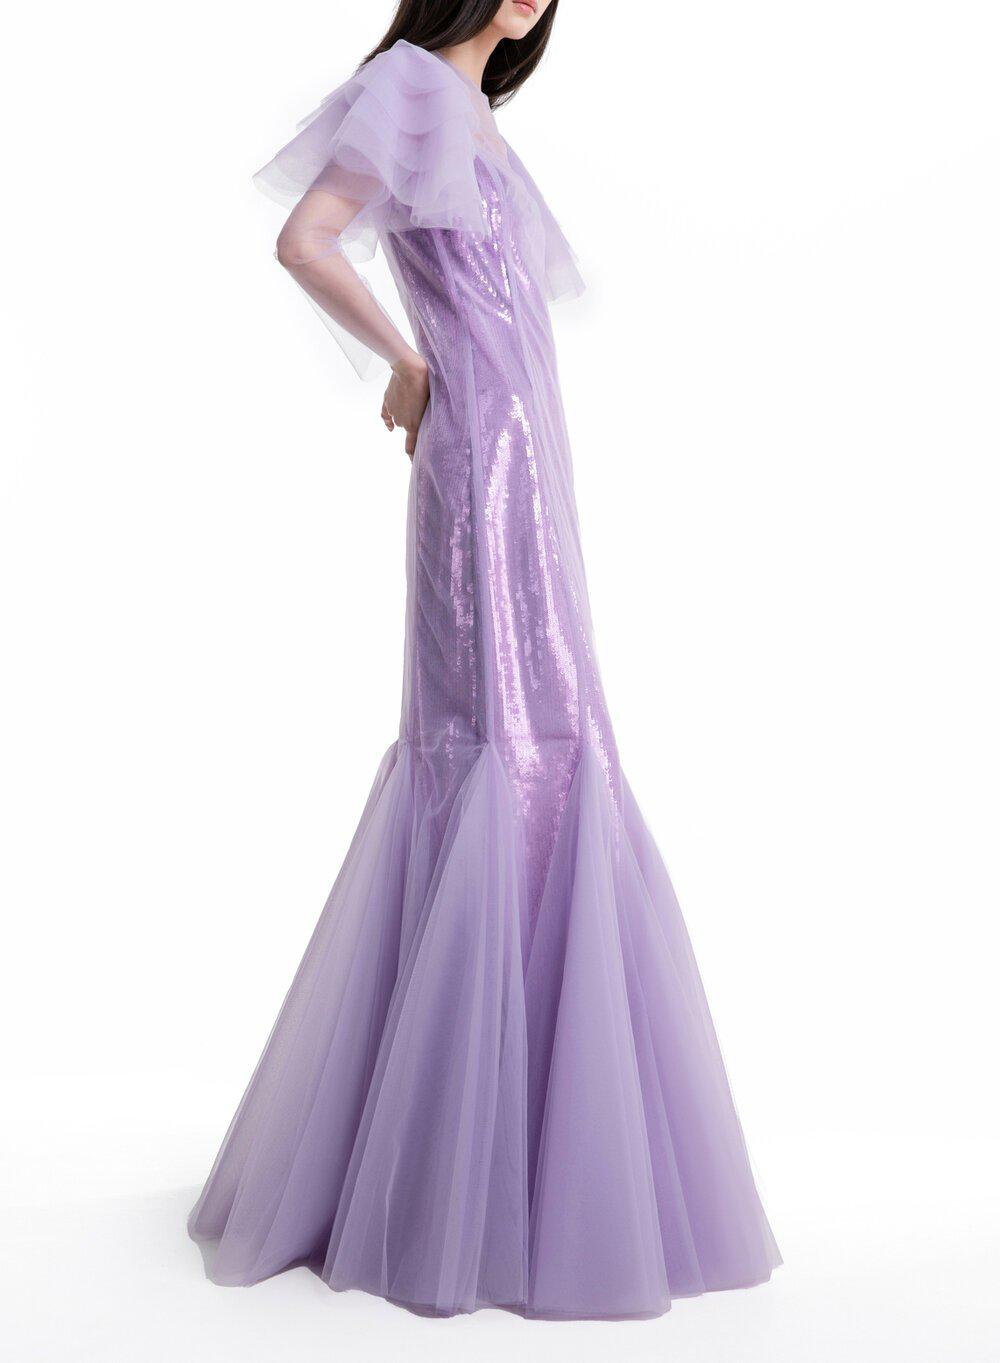 AURORA GOWN LILAC TULLE 3